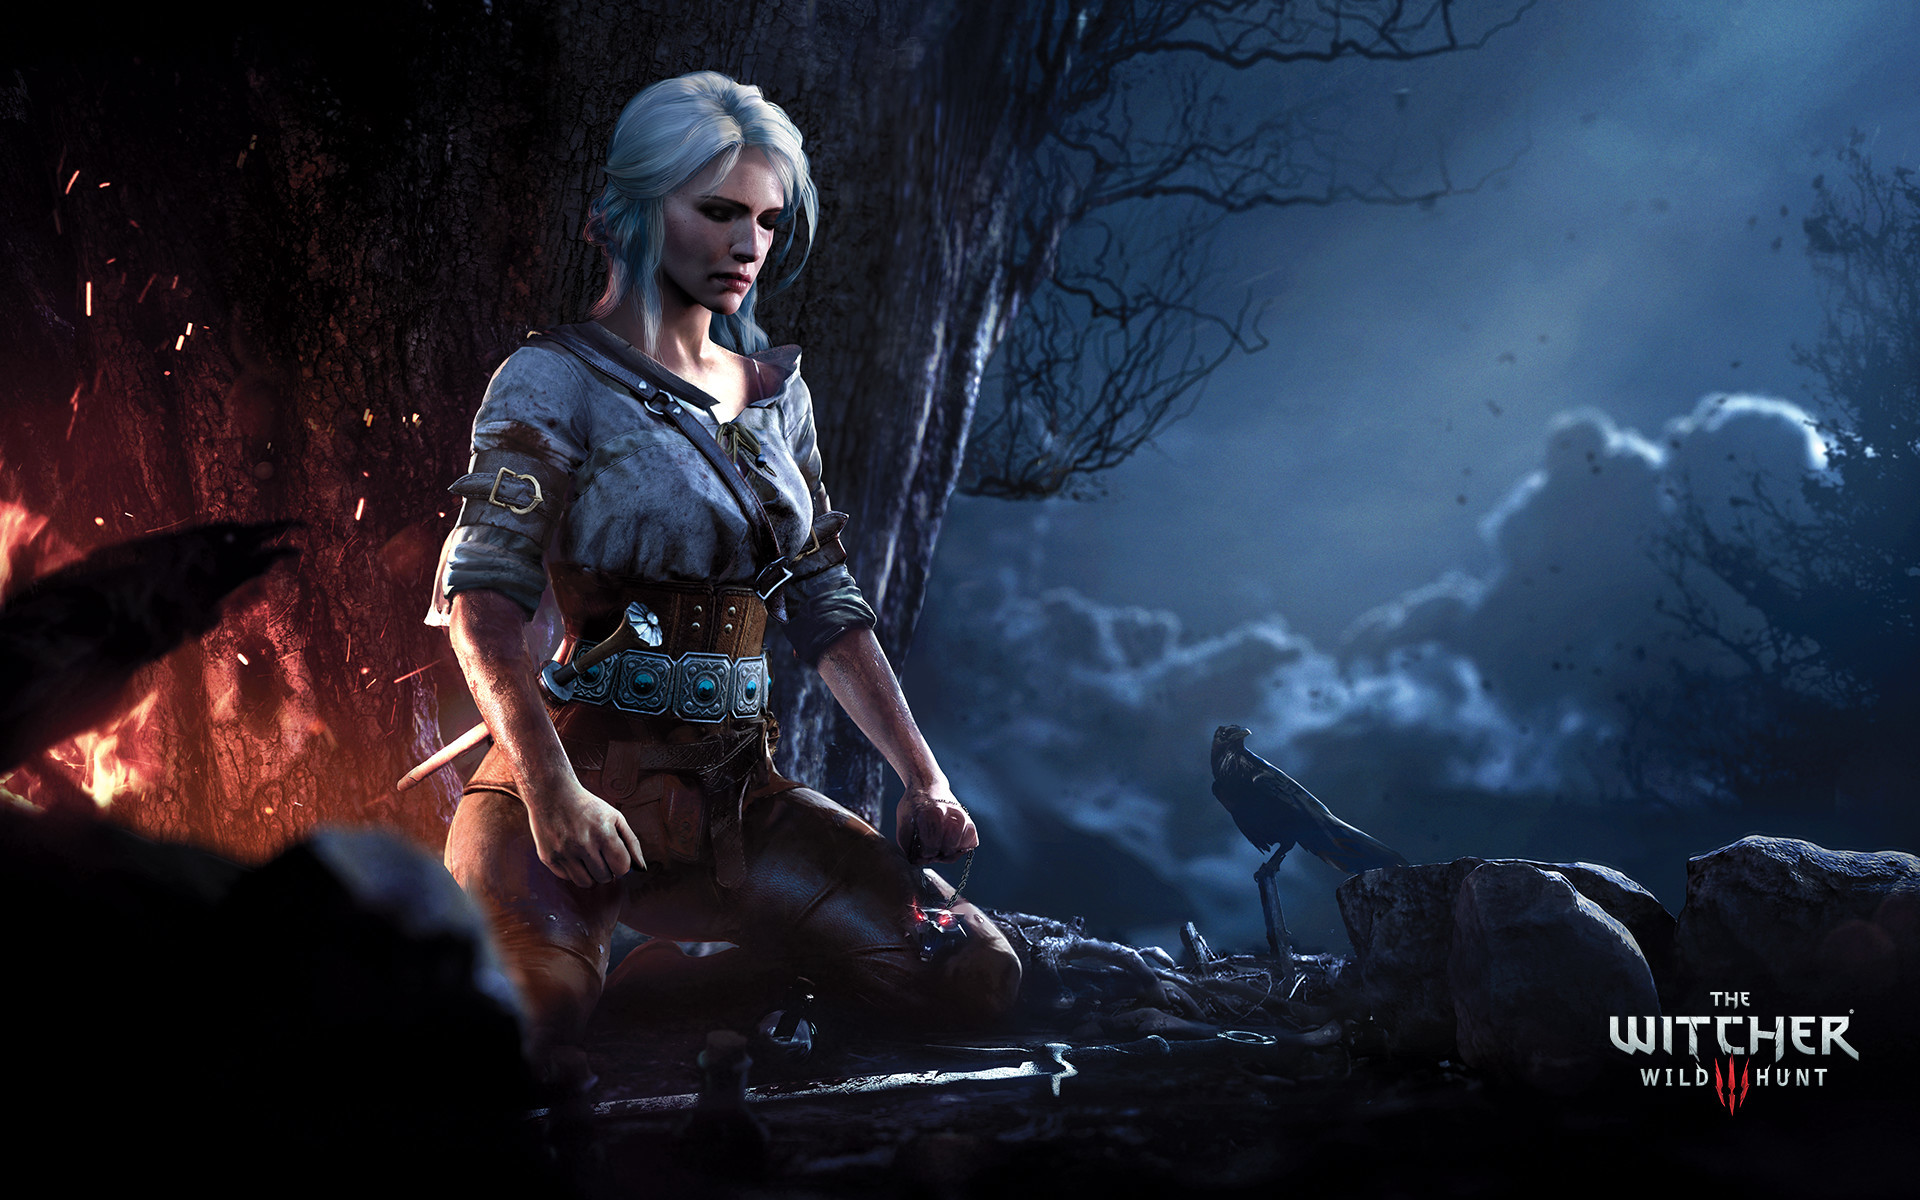 The Witcher 3 has easily been my favourite game of